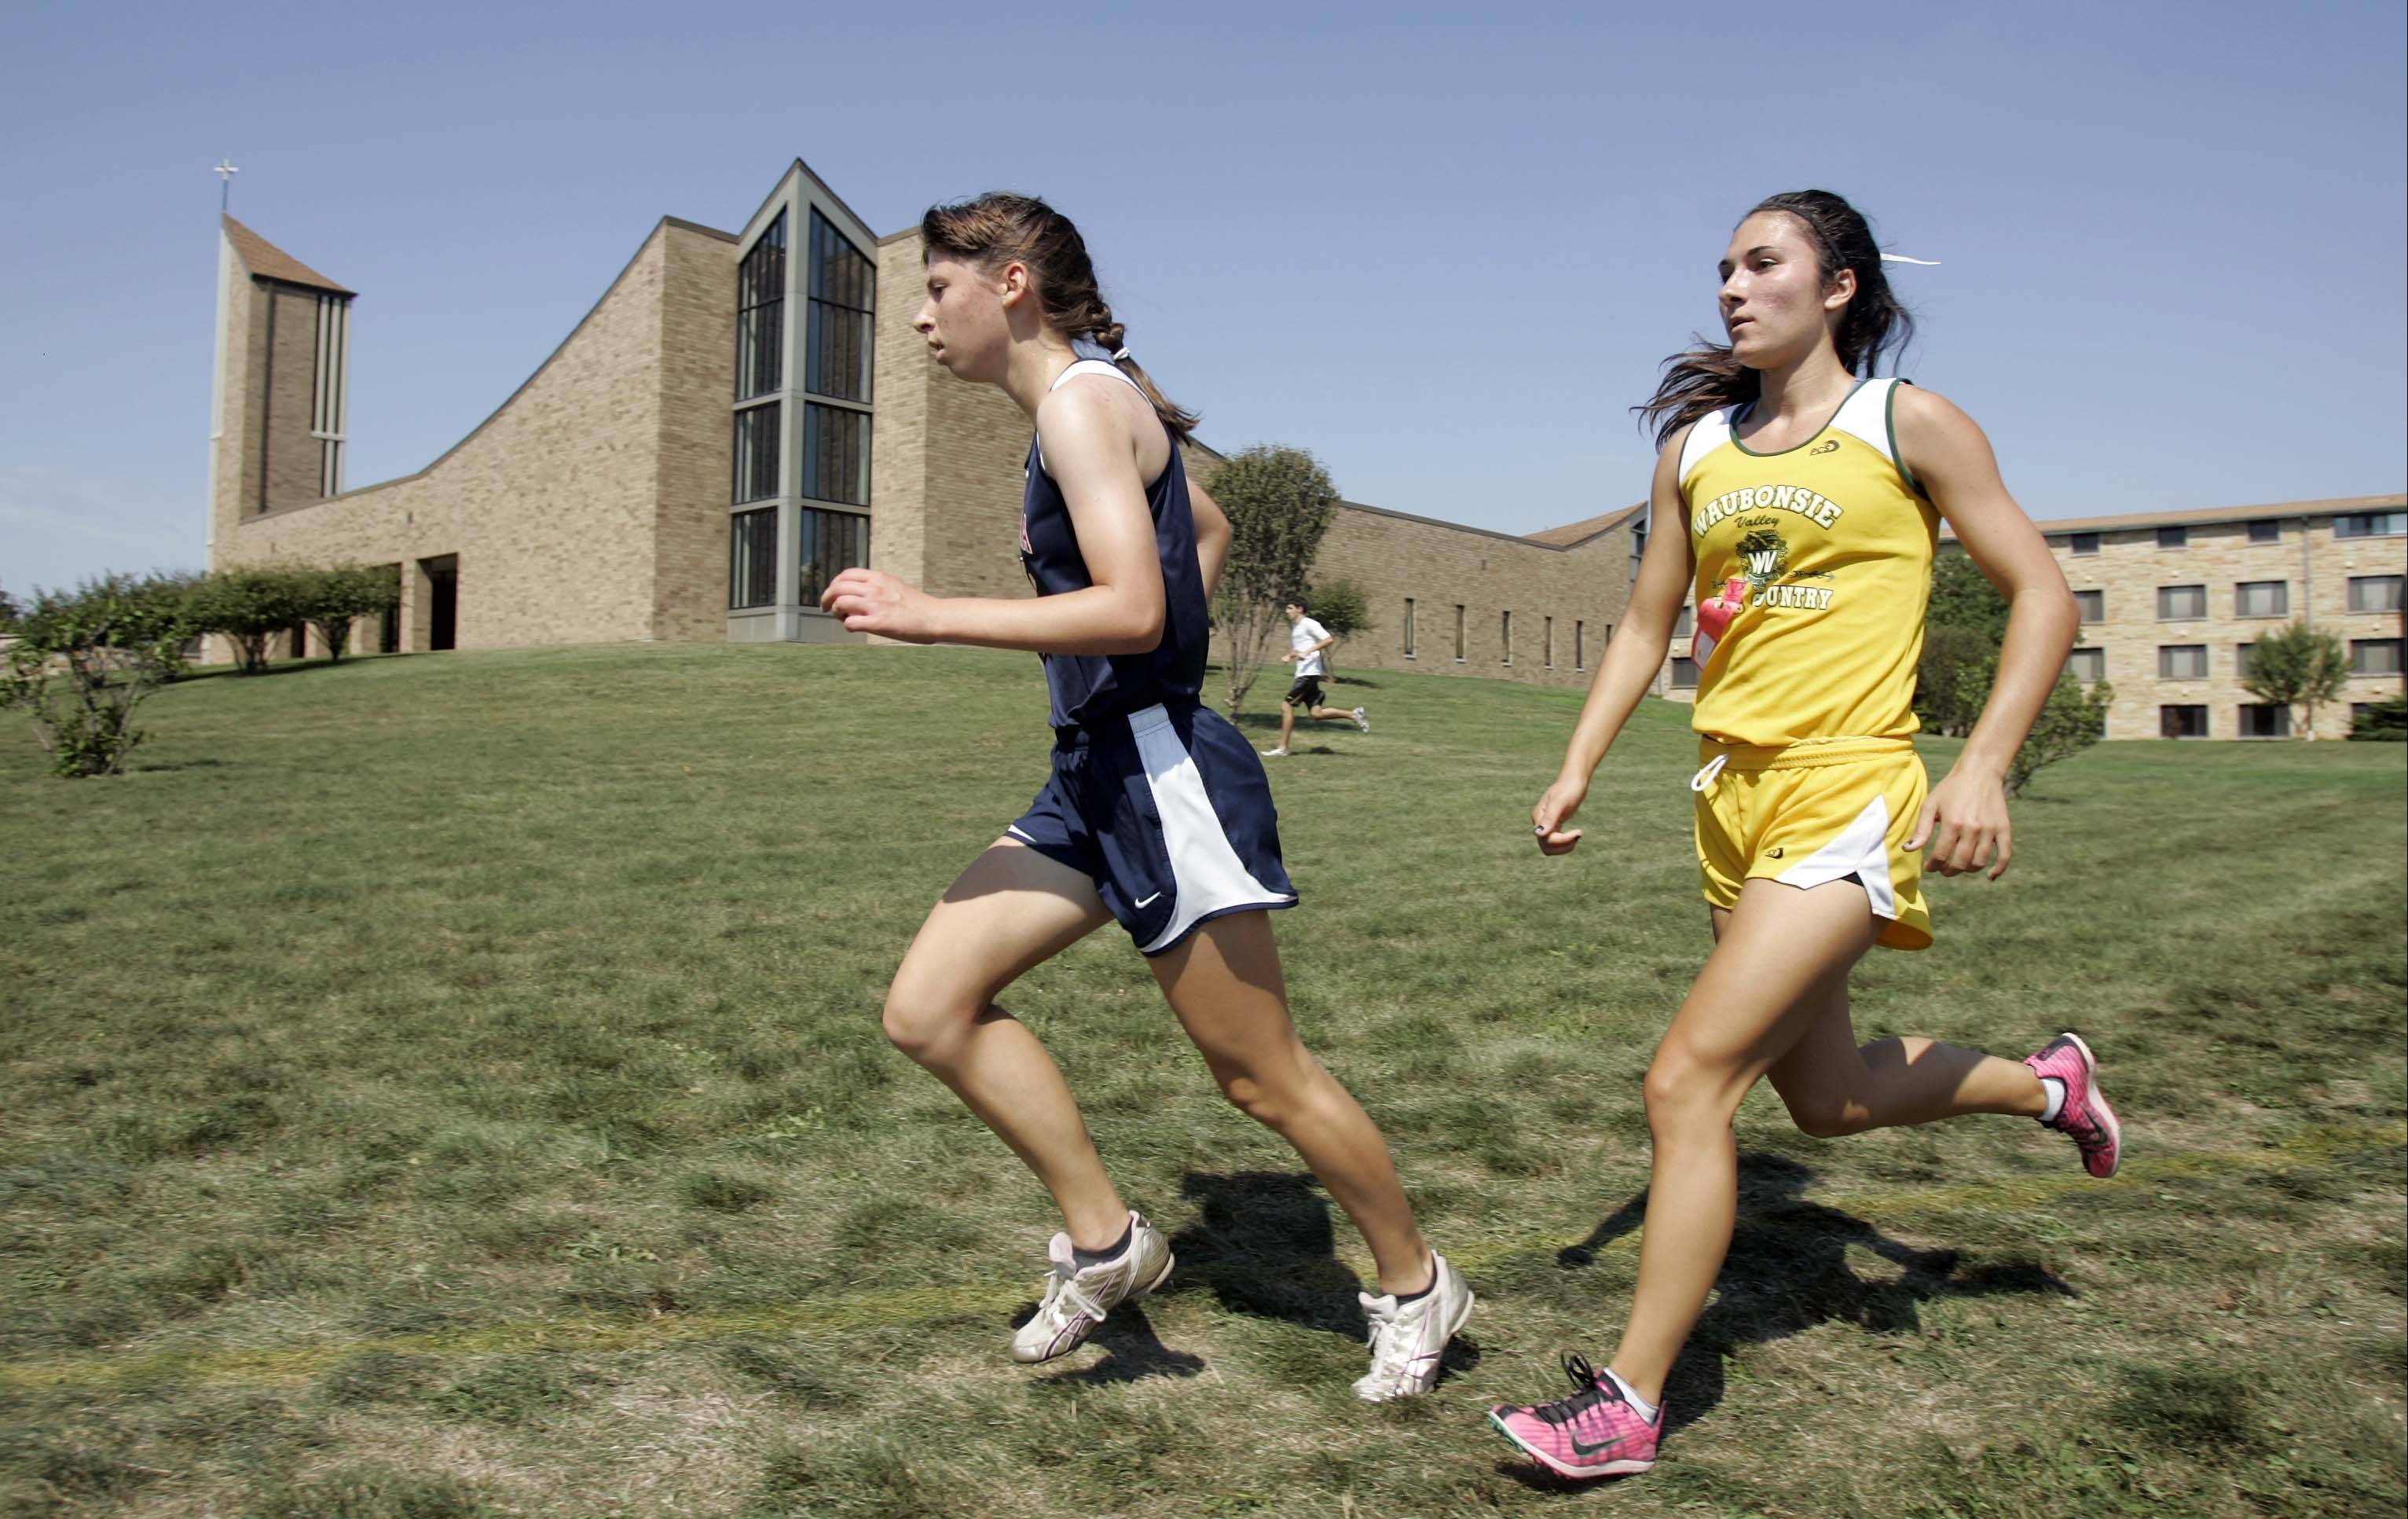 West Aurora's Miranda Gollwitzer, left, came in second behind Waubonsie Valley's Ashley Bruner, right, Saturday at the Aurora City Meet at Marmion.